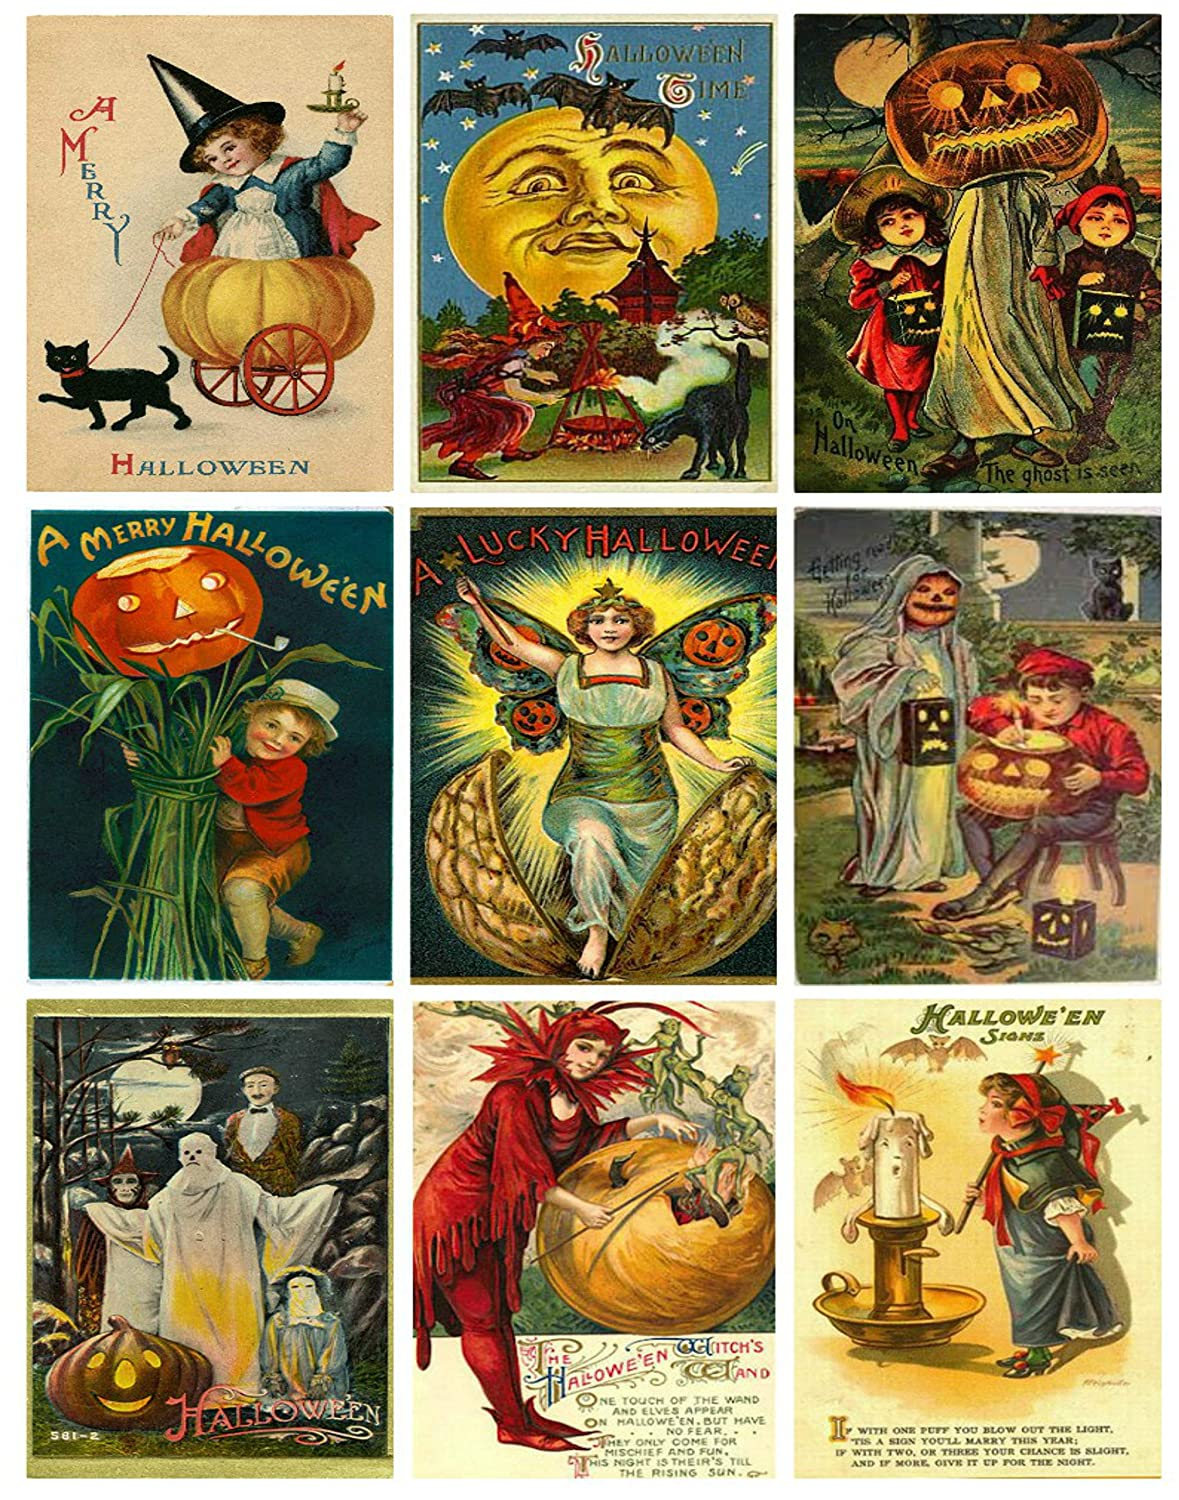 Victorian Vintage Halloween Printed Collage Sheet 8.5 x 11 Paper Moon Media